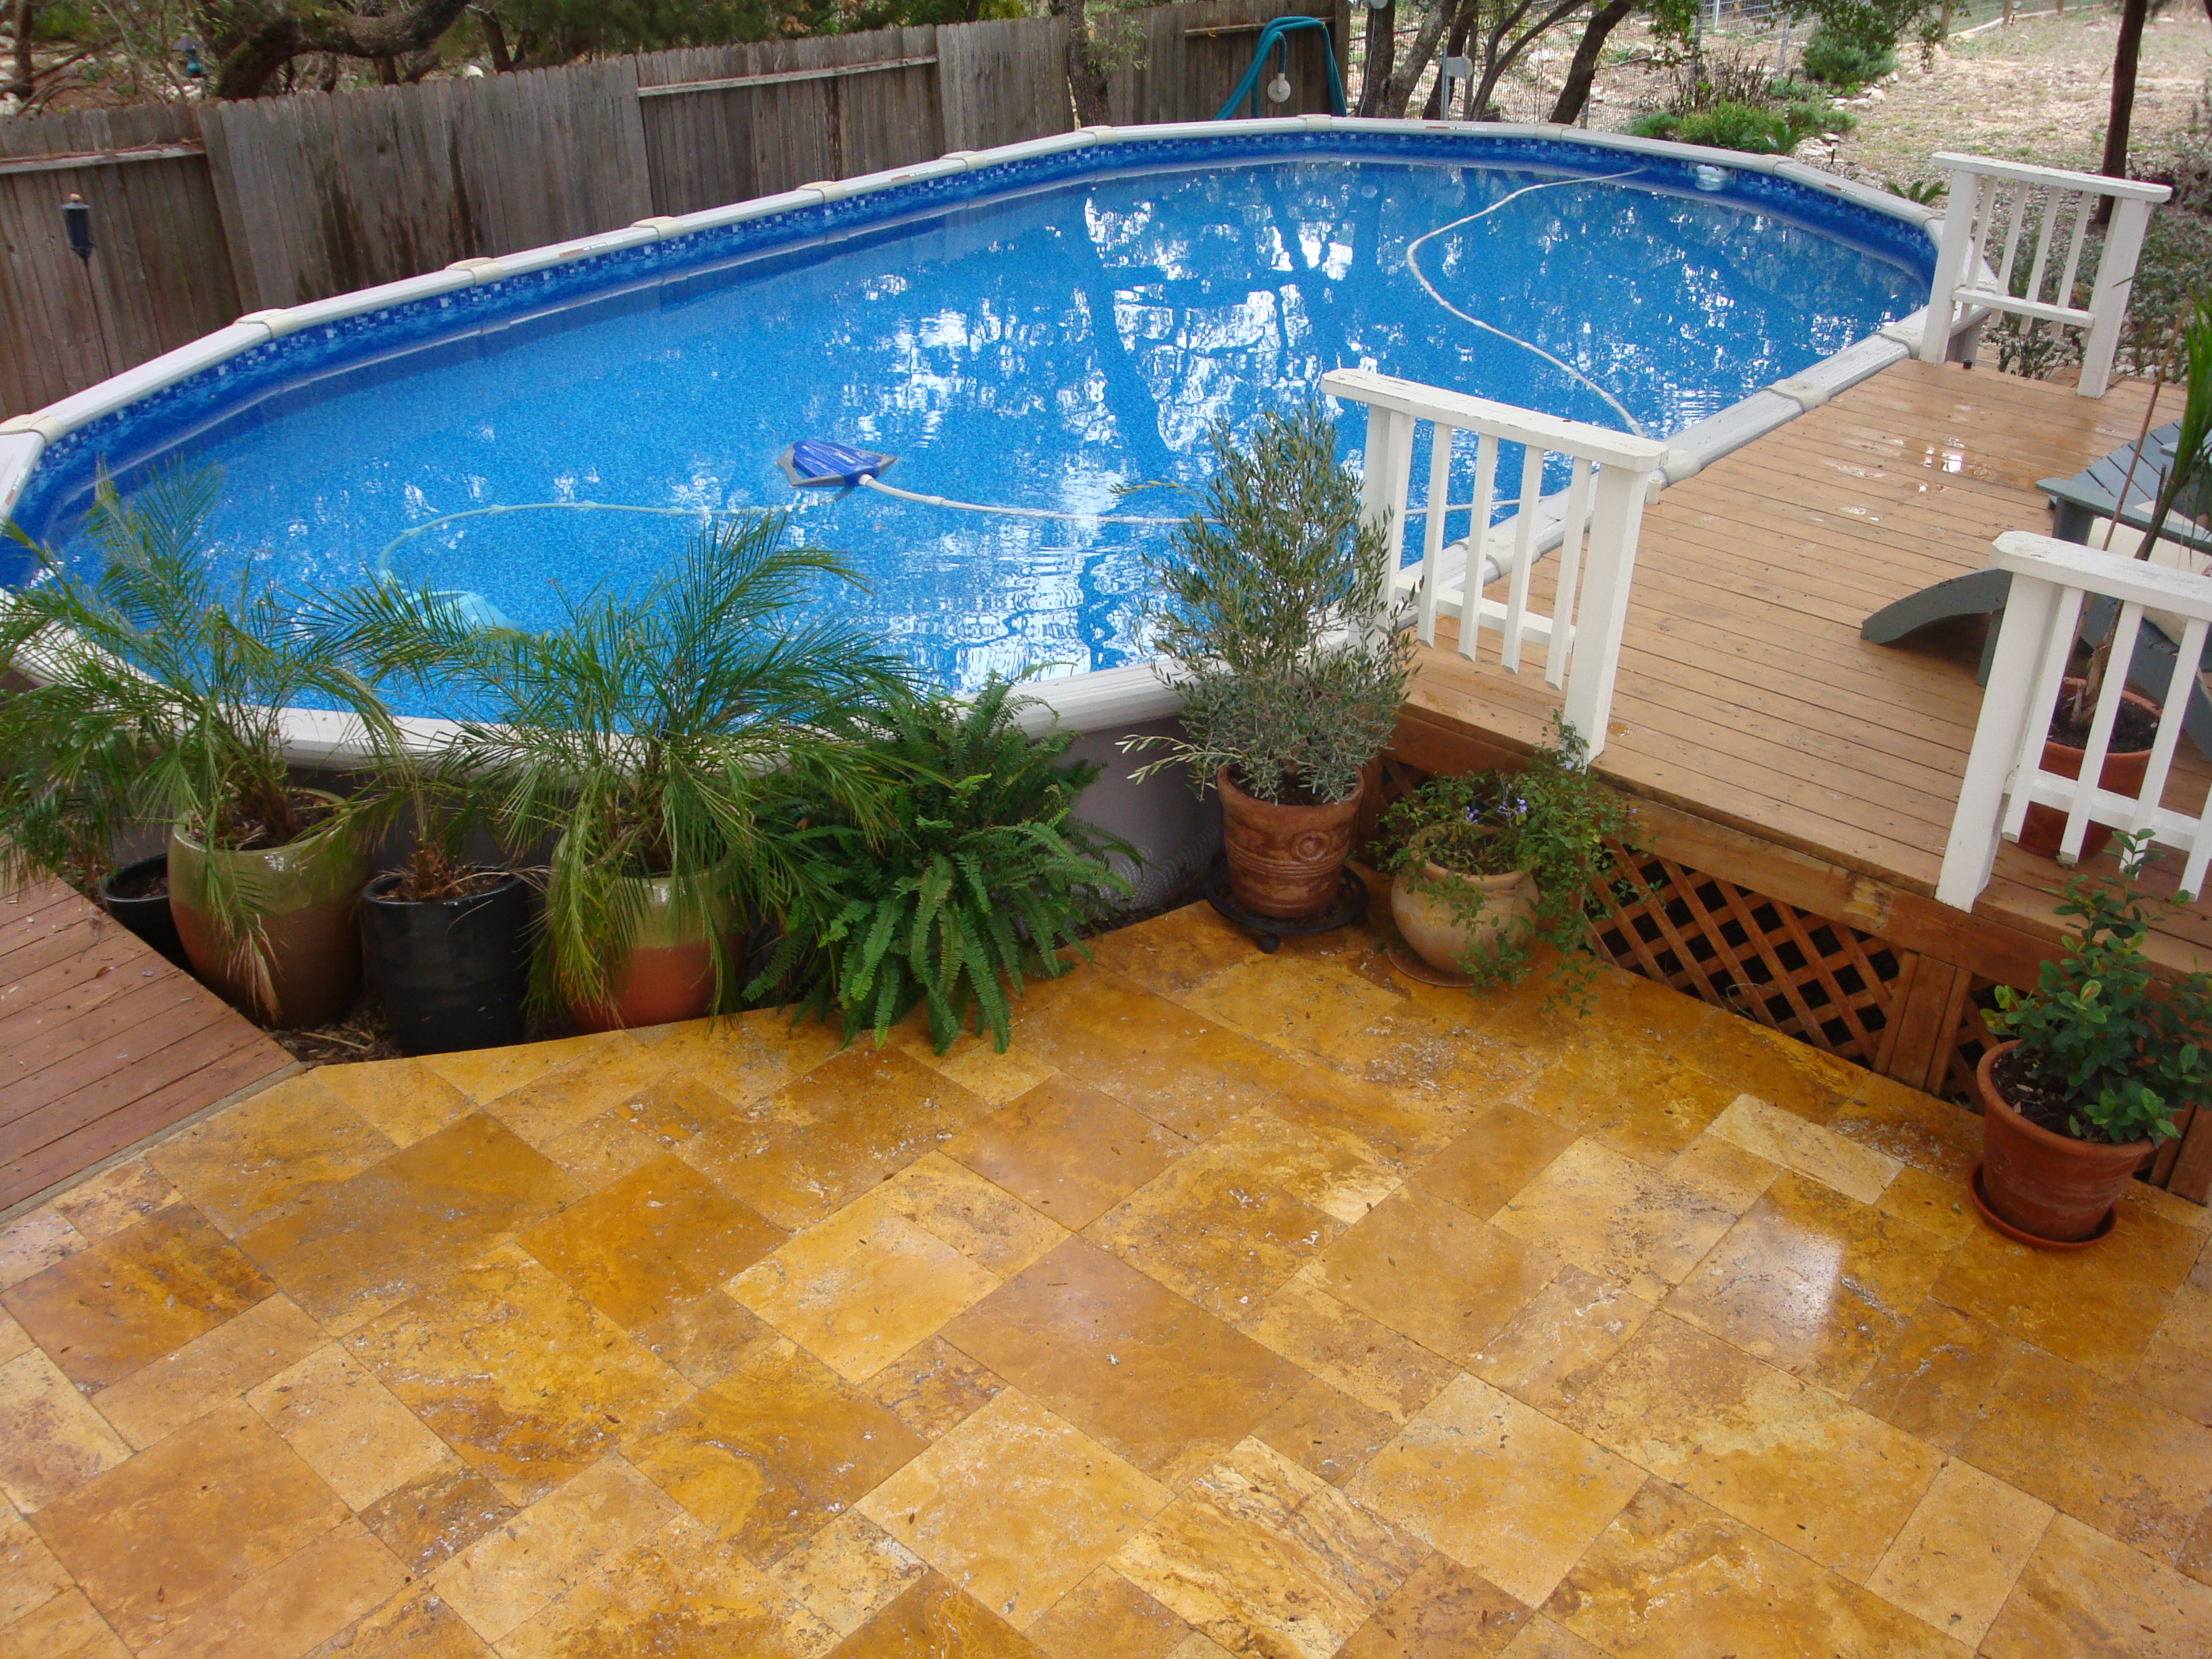 backyard above ground pool ideas photo - 1